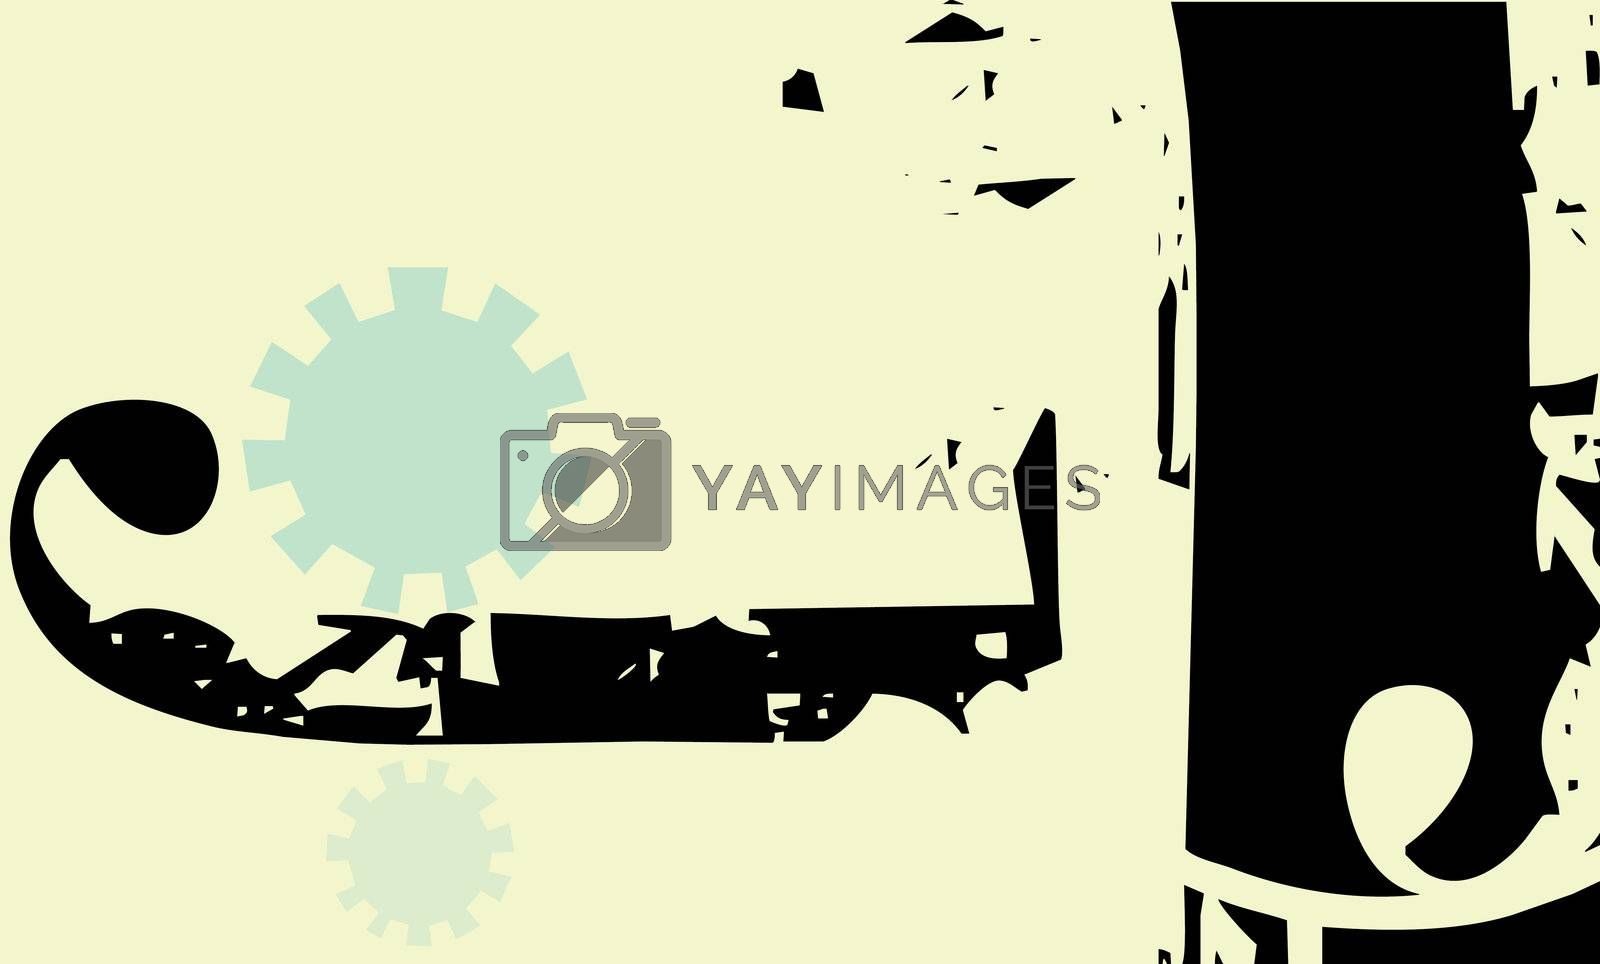 Modern style background with gears and african patterning.